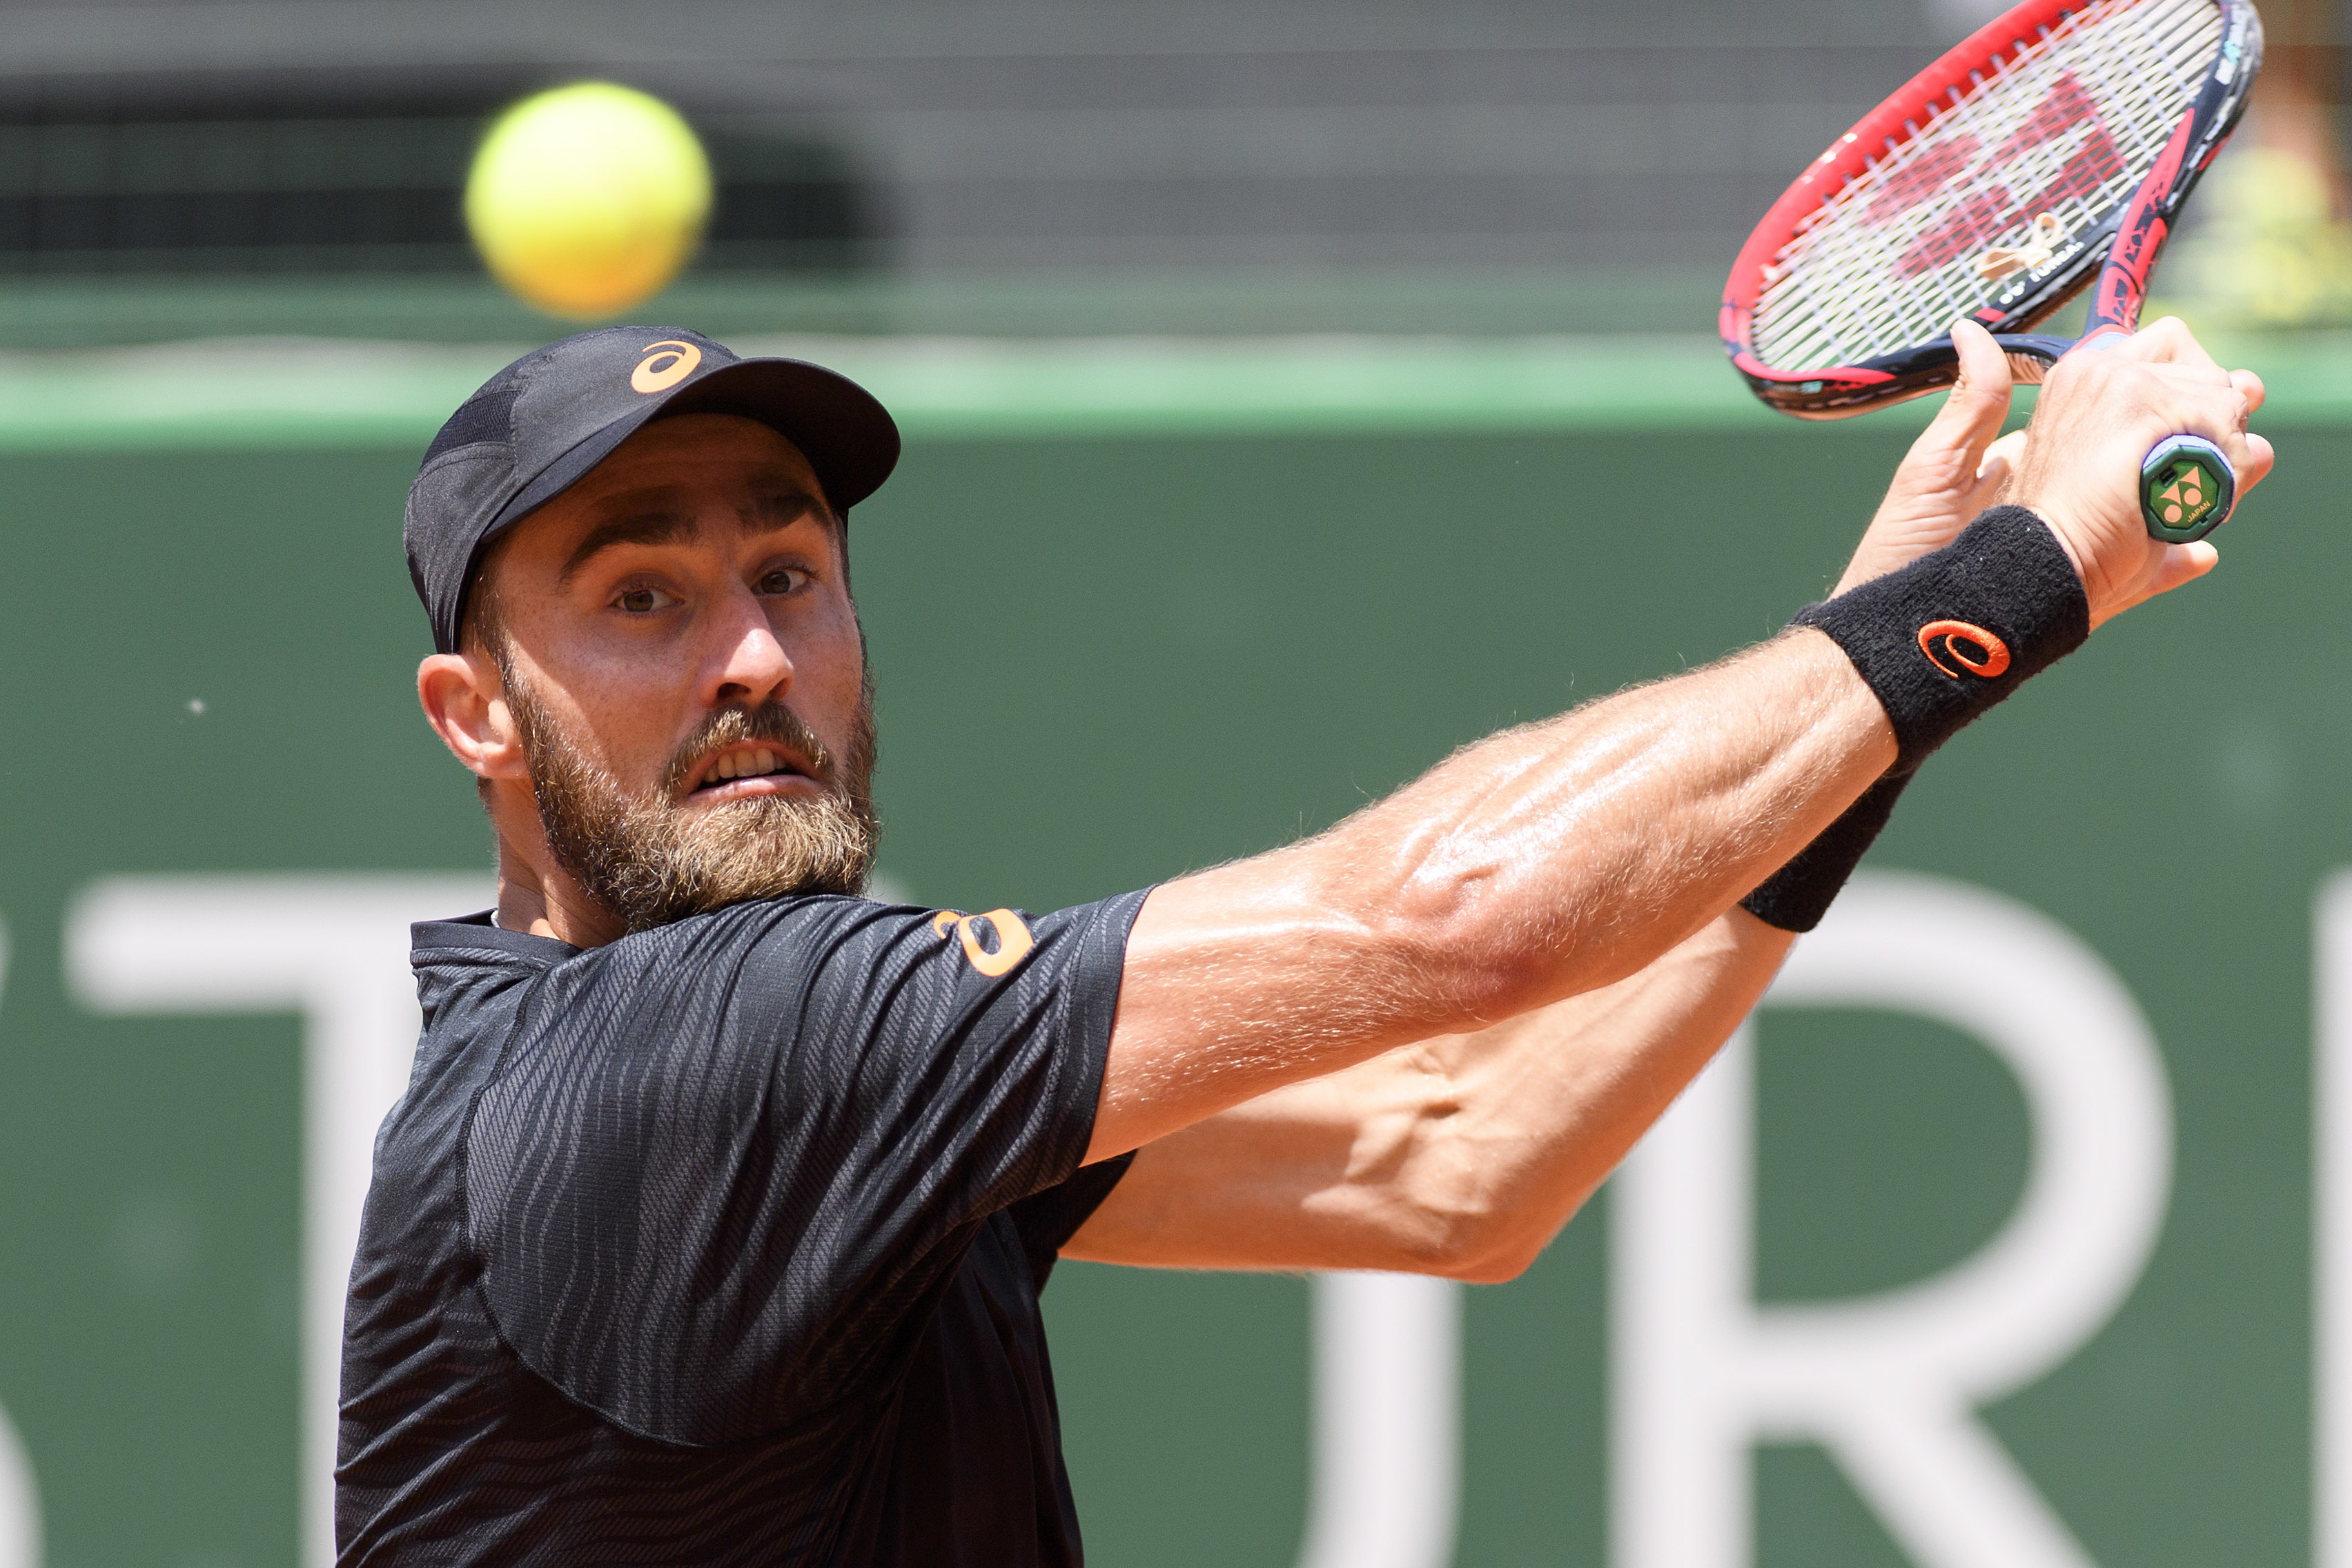 Steve Johnson of the U.S, returns a ball to Mischa Zverev of Germany, during a quarterfinal match of the Geneva Open ATP 250 tennis tournament, in Geneva, Switzerland, Thursday, May 25, 2016. (Martial Trezzini/Keystone via AP)